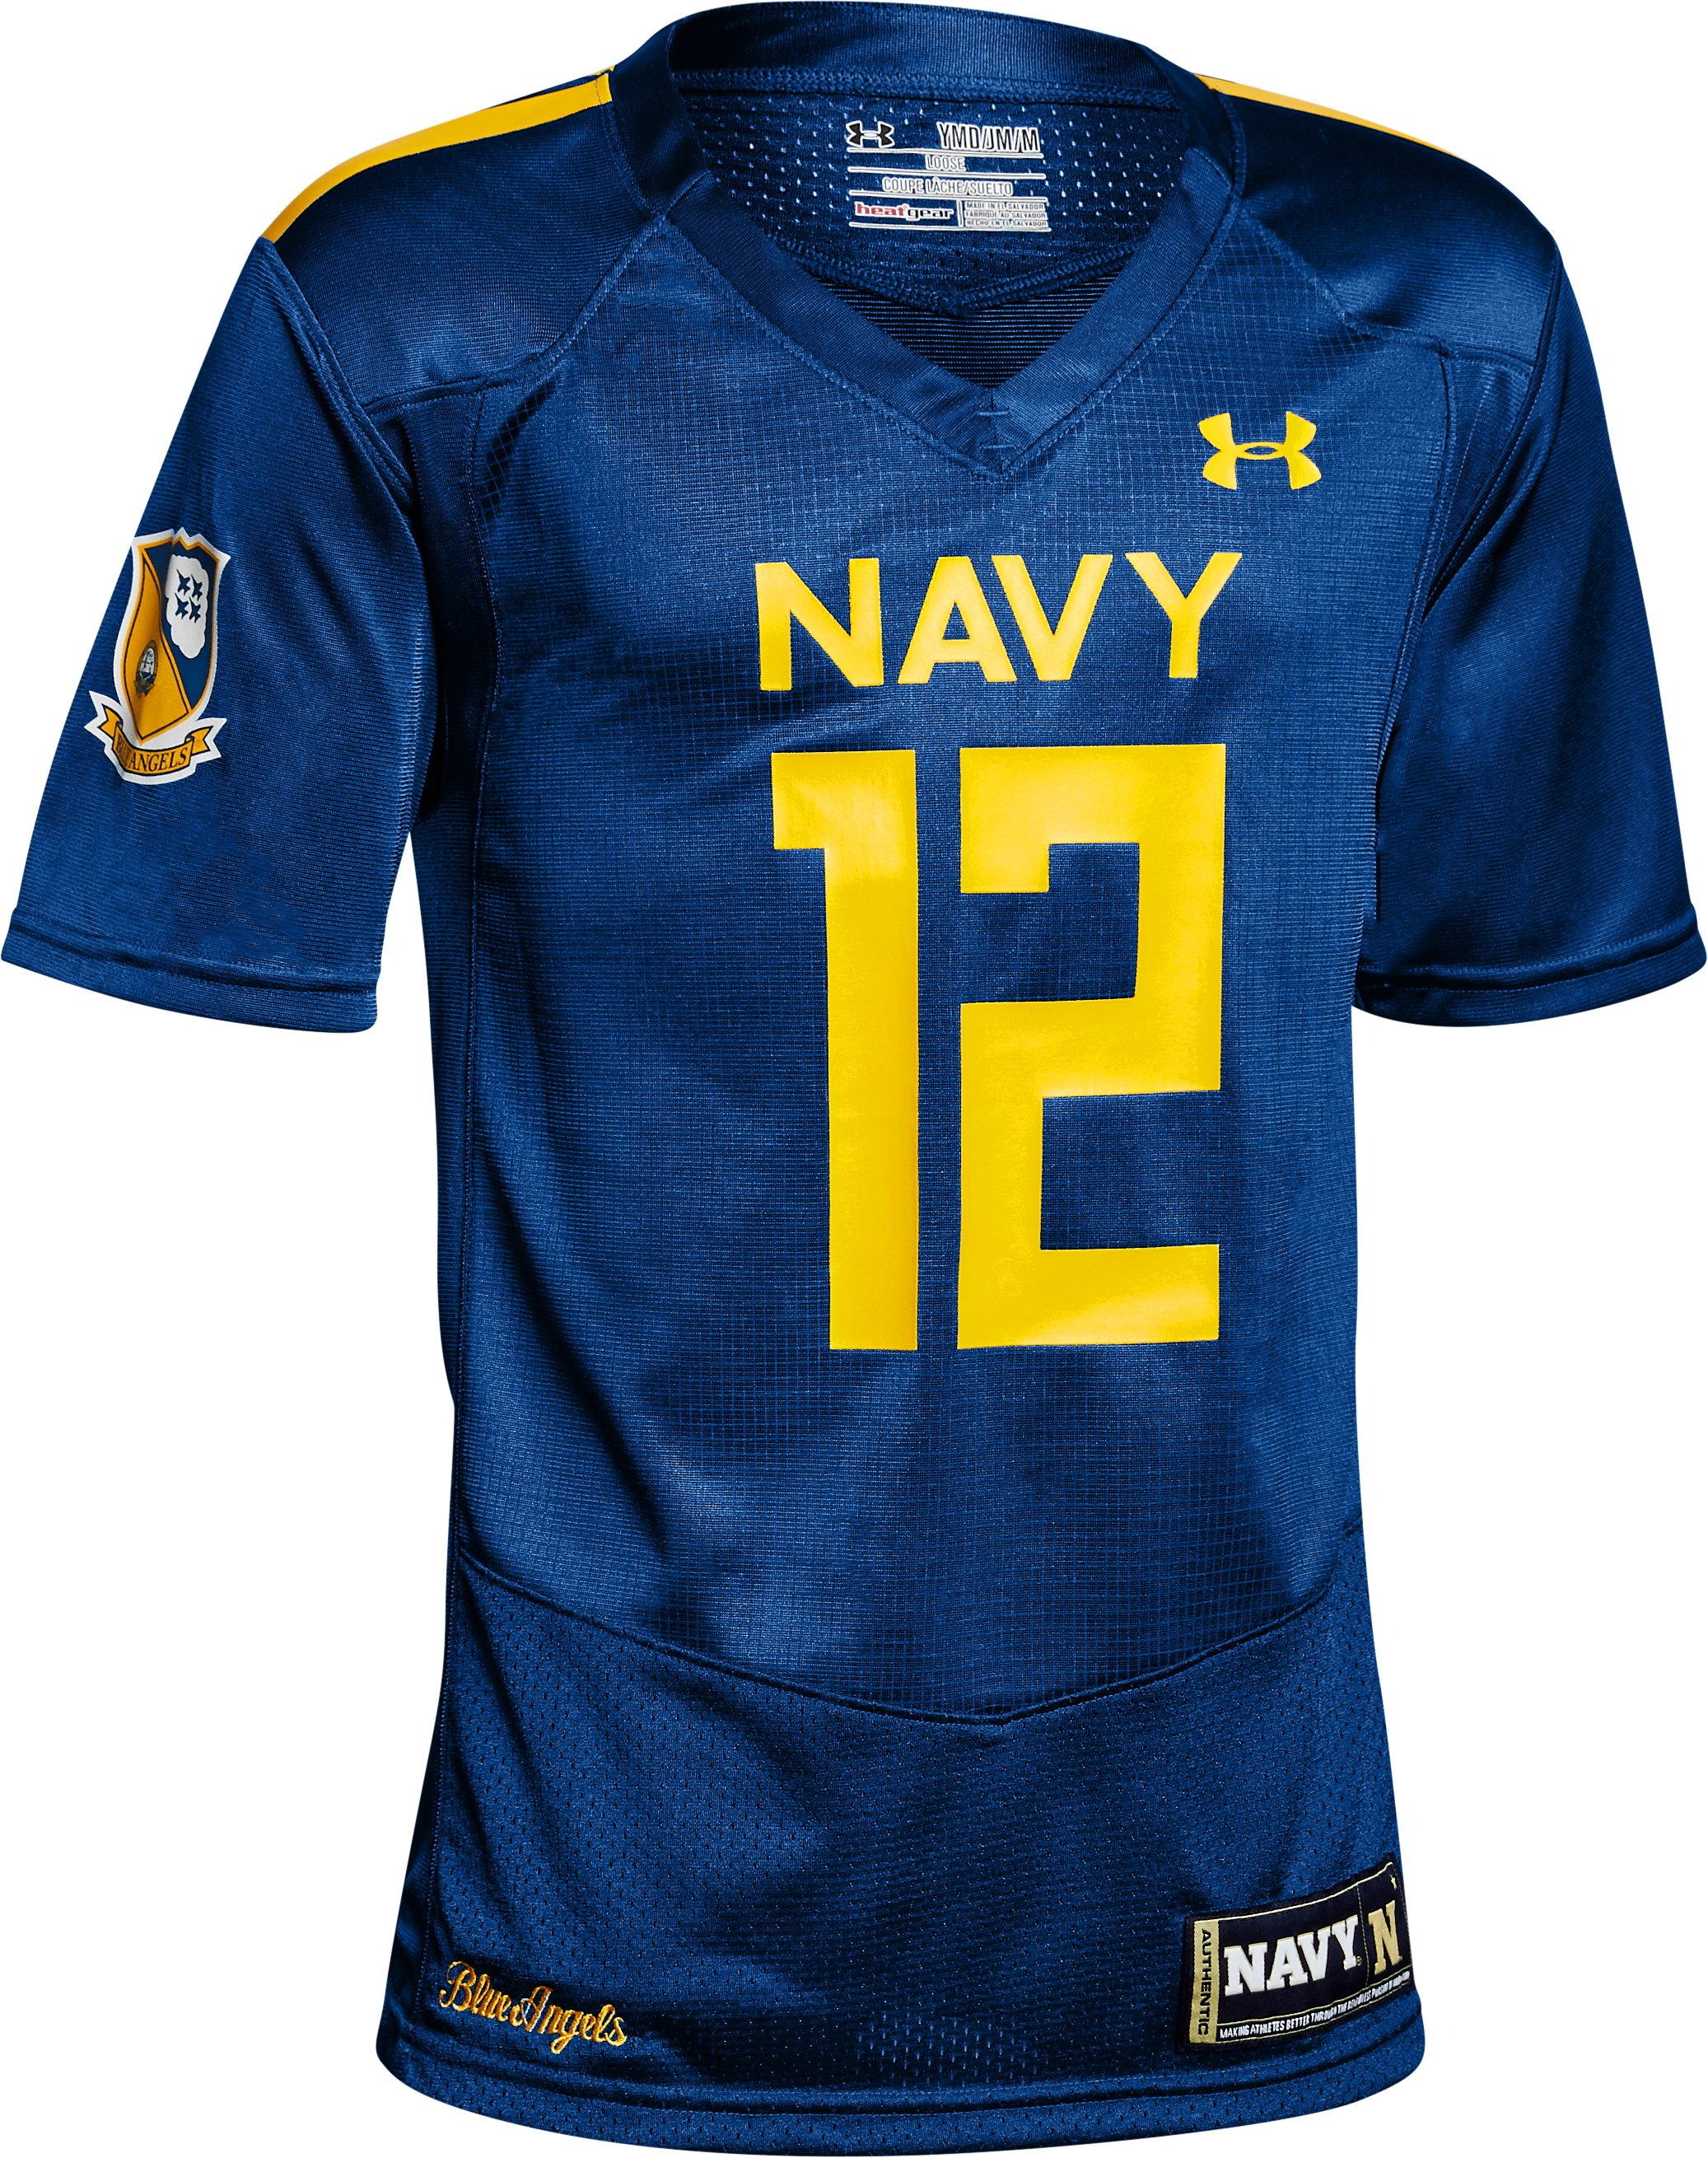 Boy's Naval Academy Replica Jersey, Royal